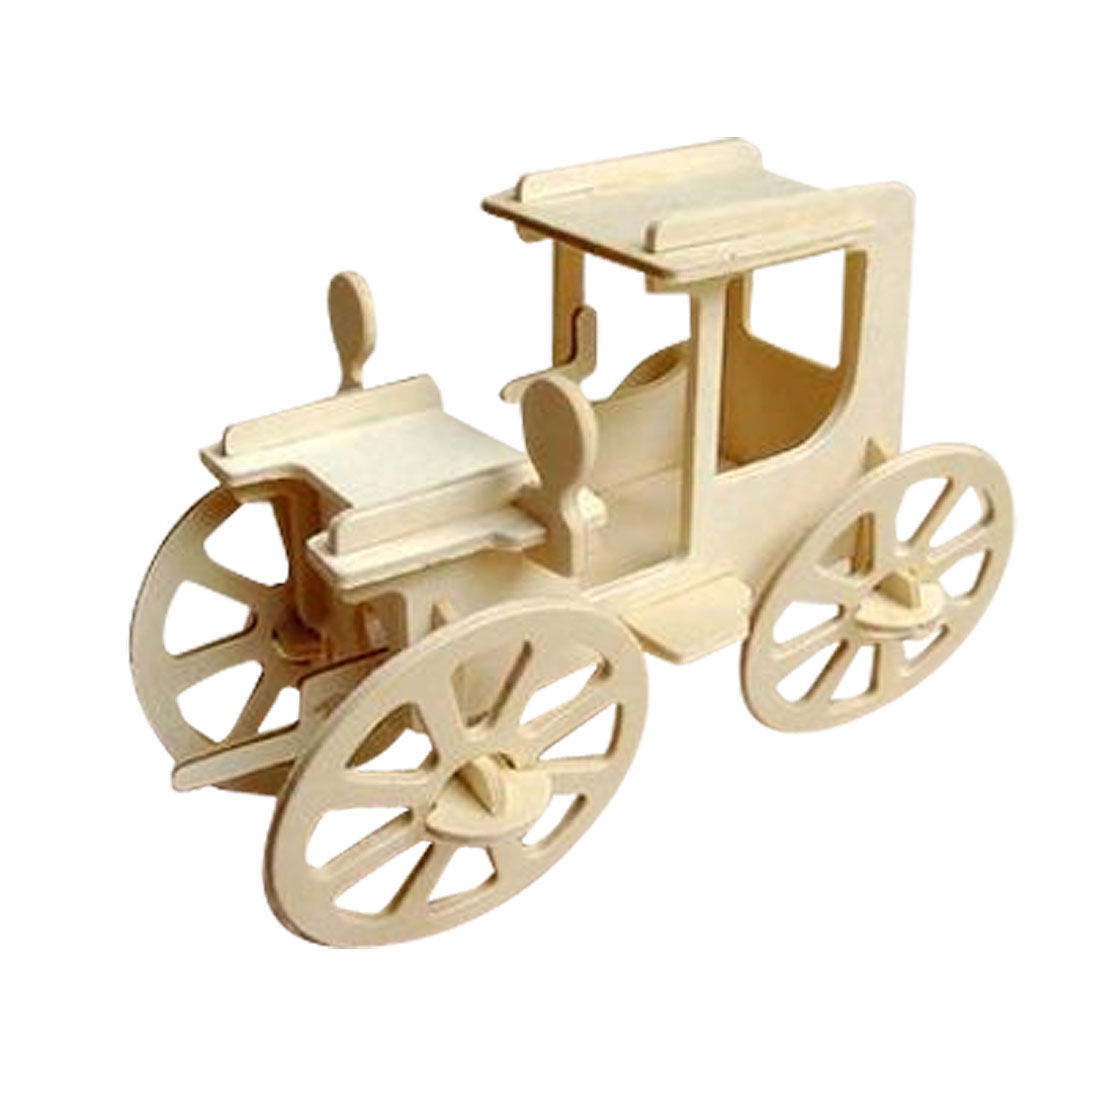 Wooden Assemble 3D Rolling Automobile Model DIY Wood Craft Construction Kit Gift